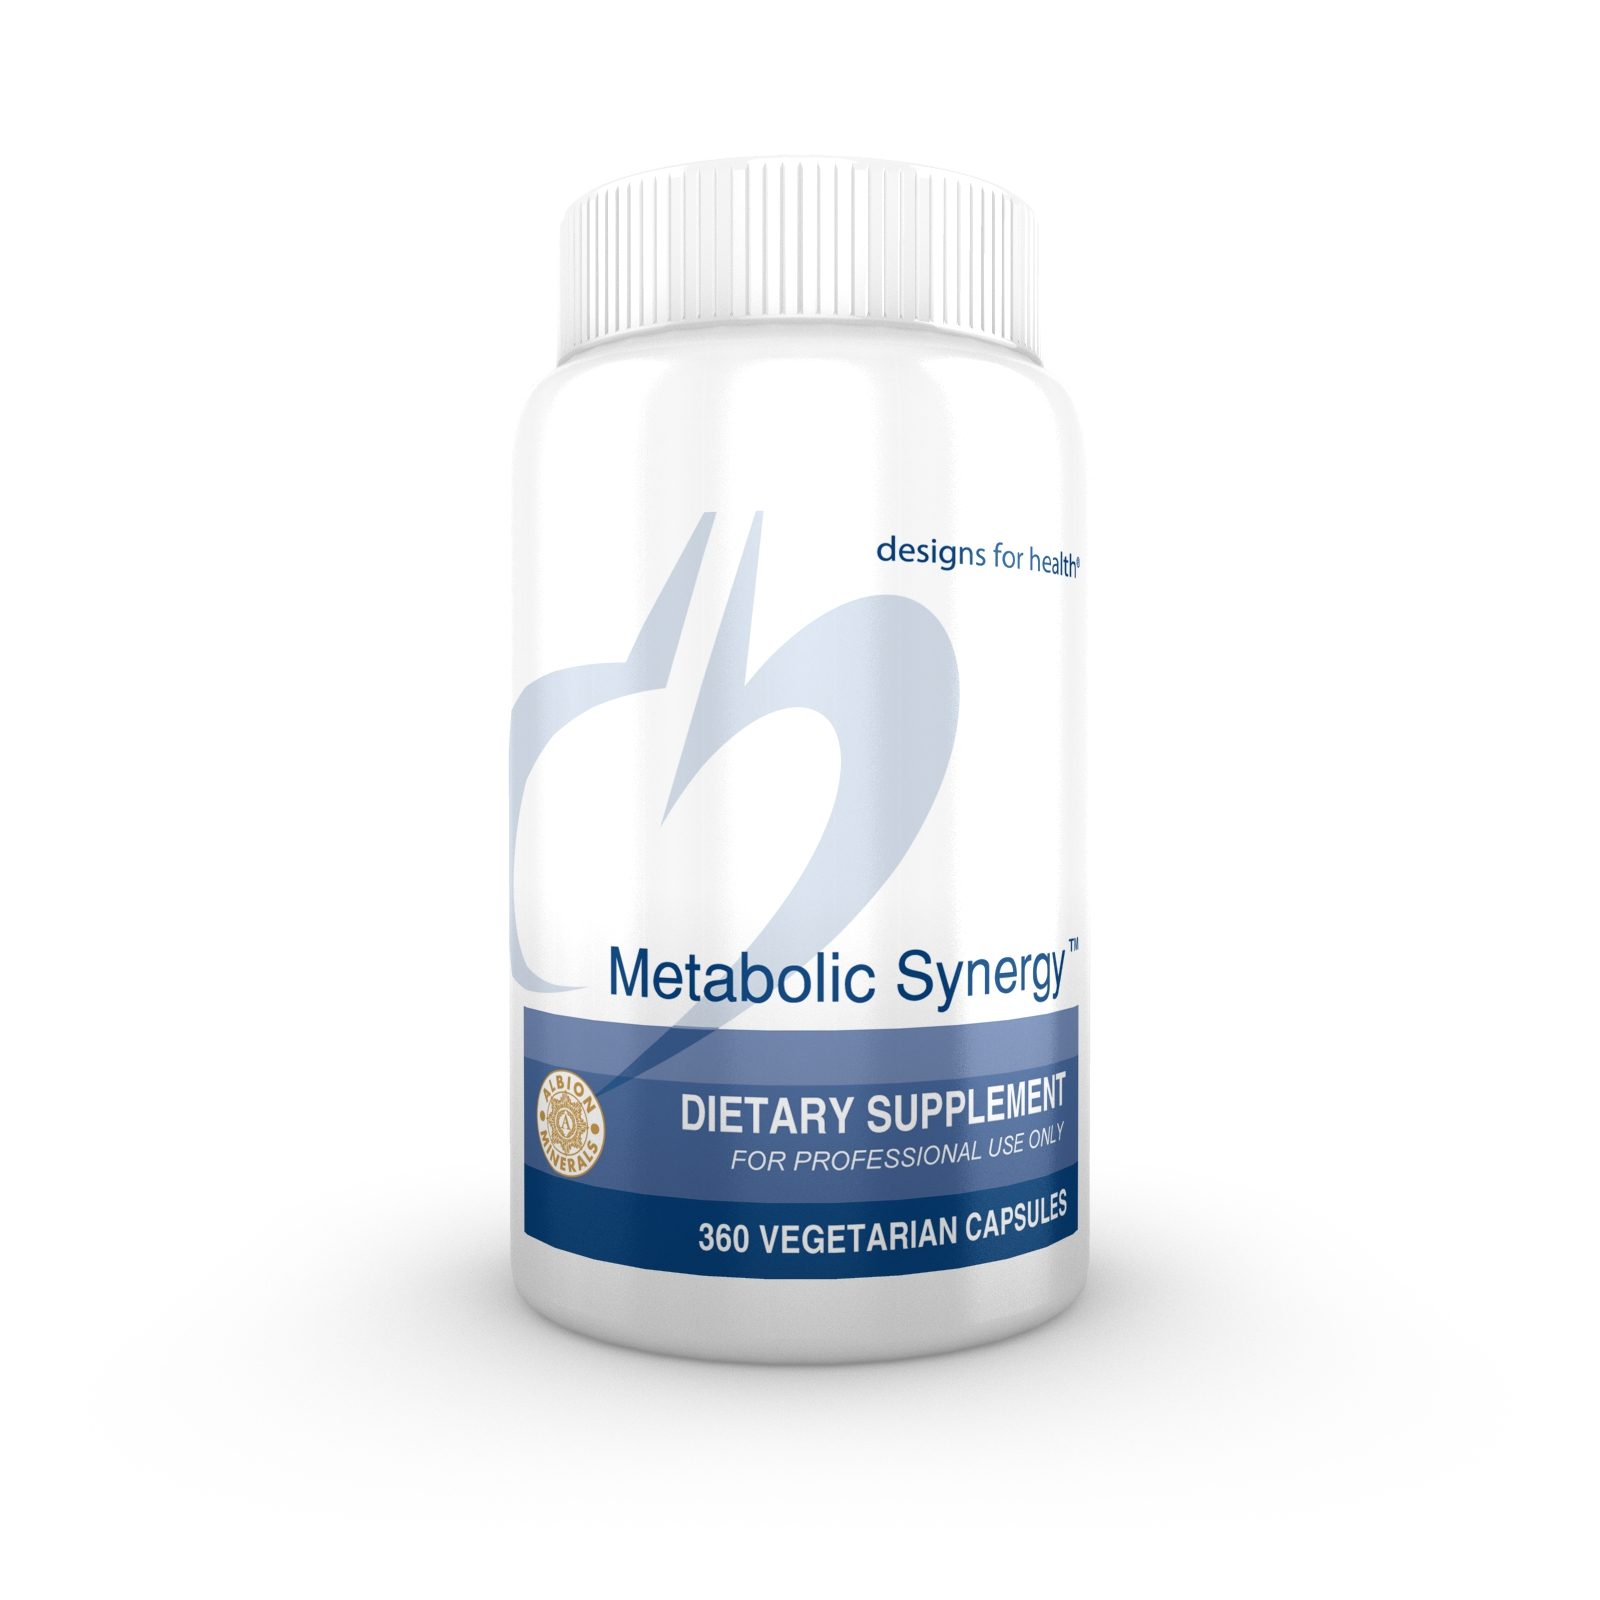 designs for health Metabolic Synergy Capsules 360 vegetarian capsules image